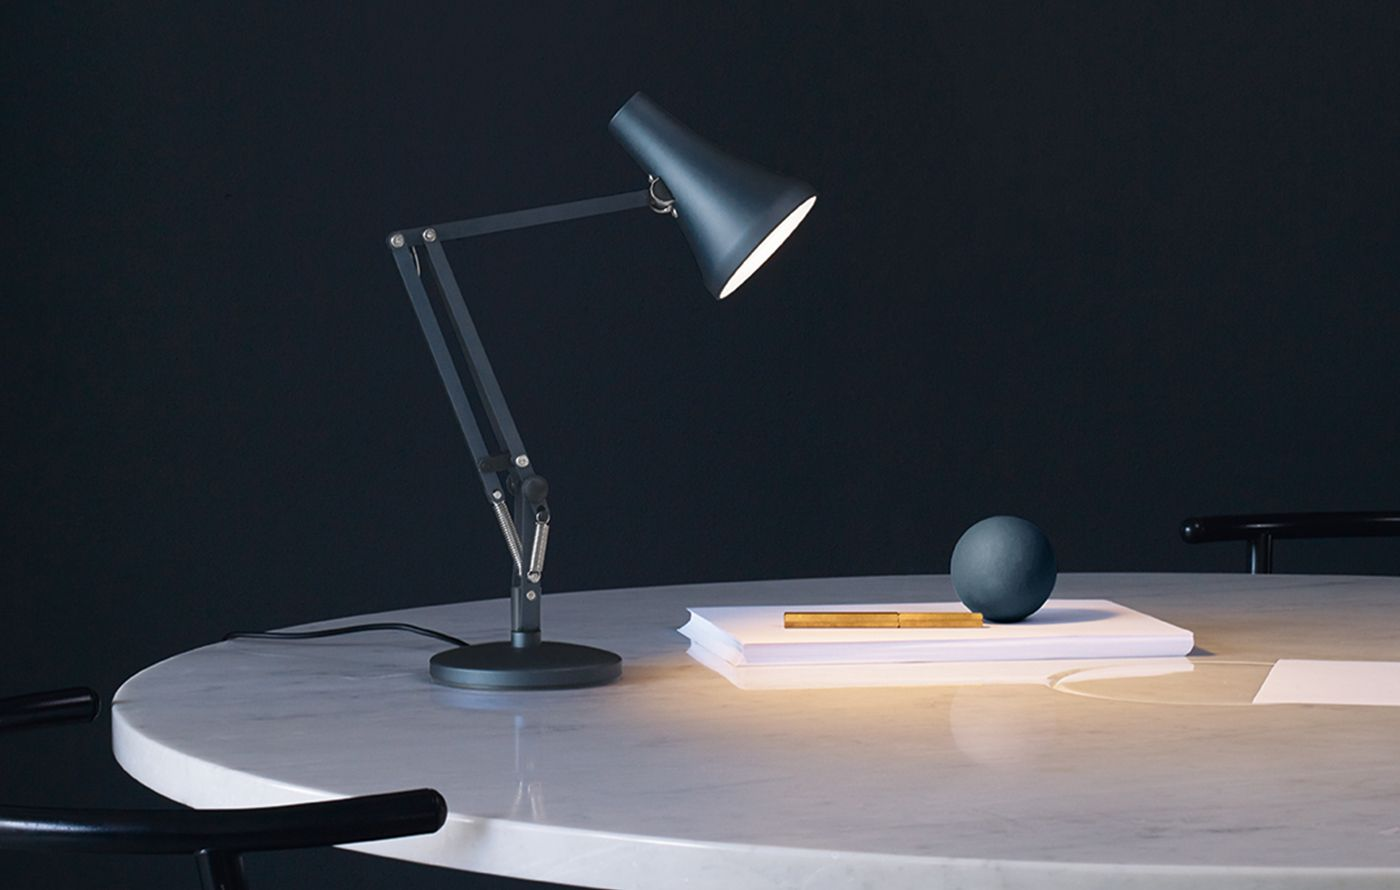 Best Modern Desk Lamps Reviews Desk Lamp With Outlet And Usb